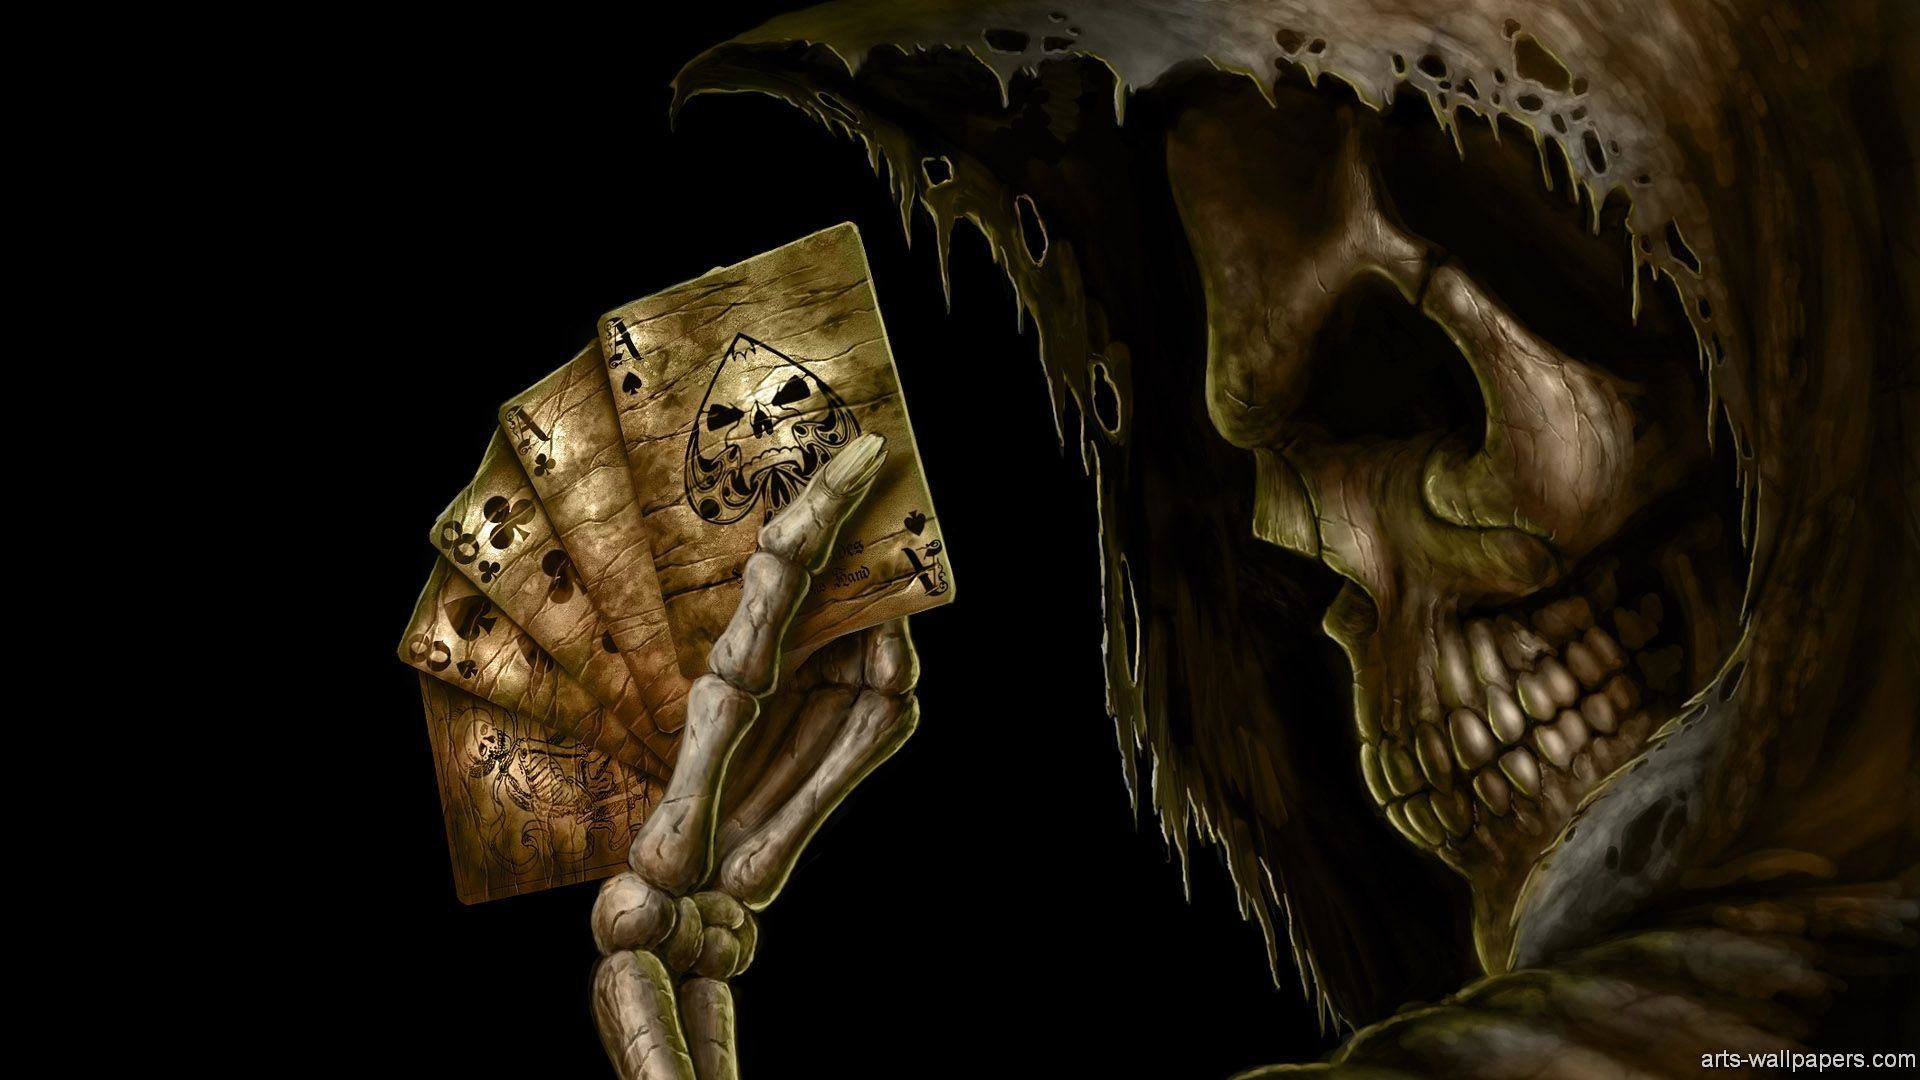 1920x1080 Wallpapers For > Cool Skull Wallpapers